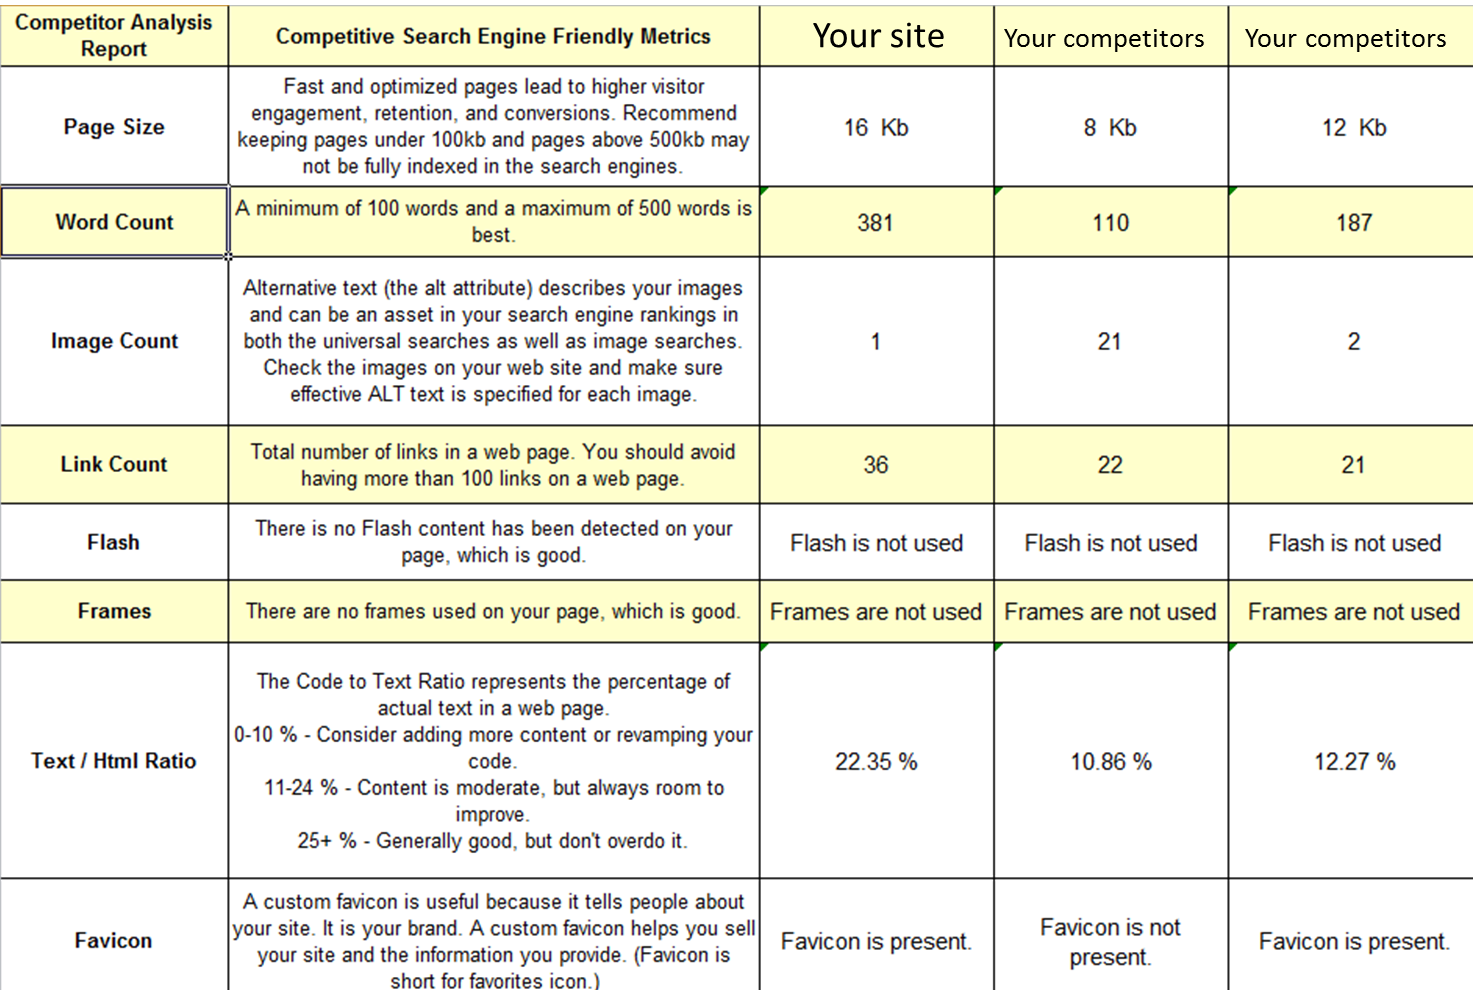 Victoriakhaze.com/wp Content/uploads/2013/03/compe...  Competitive Analysis Report Example